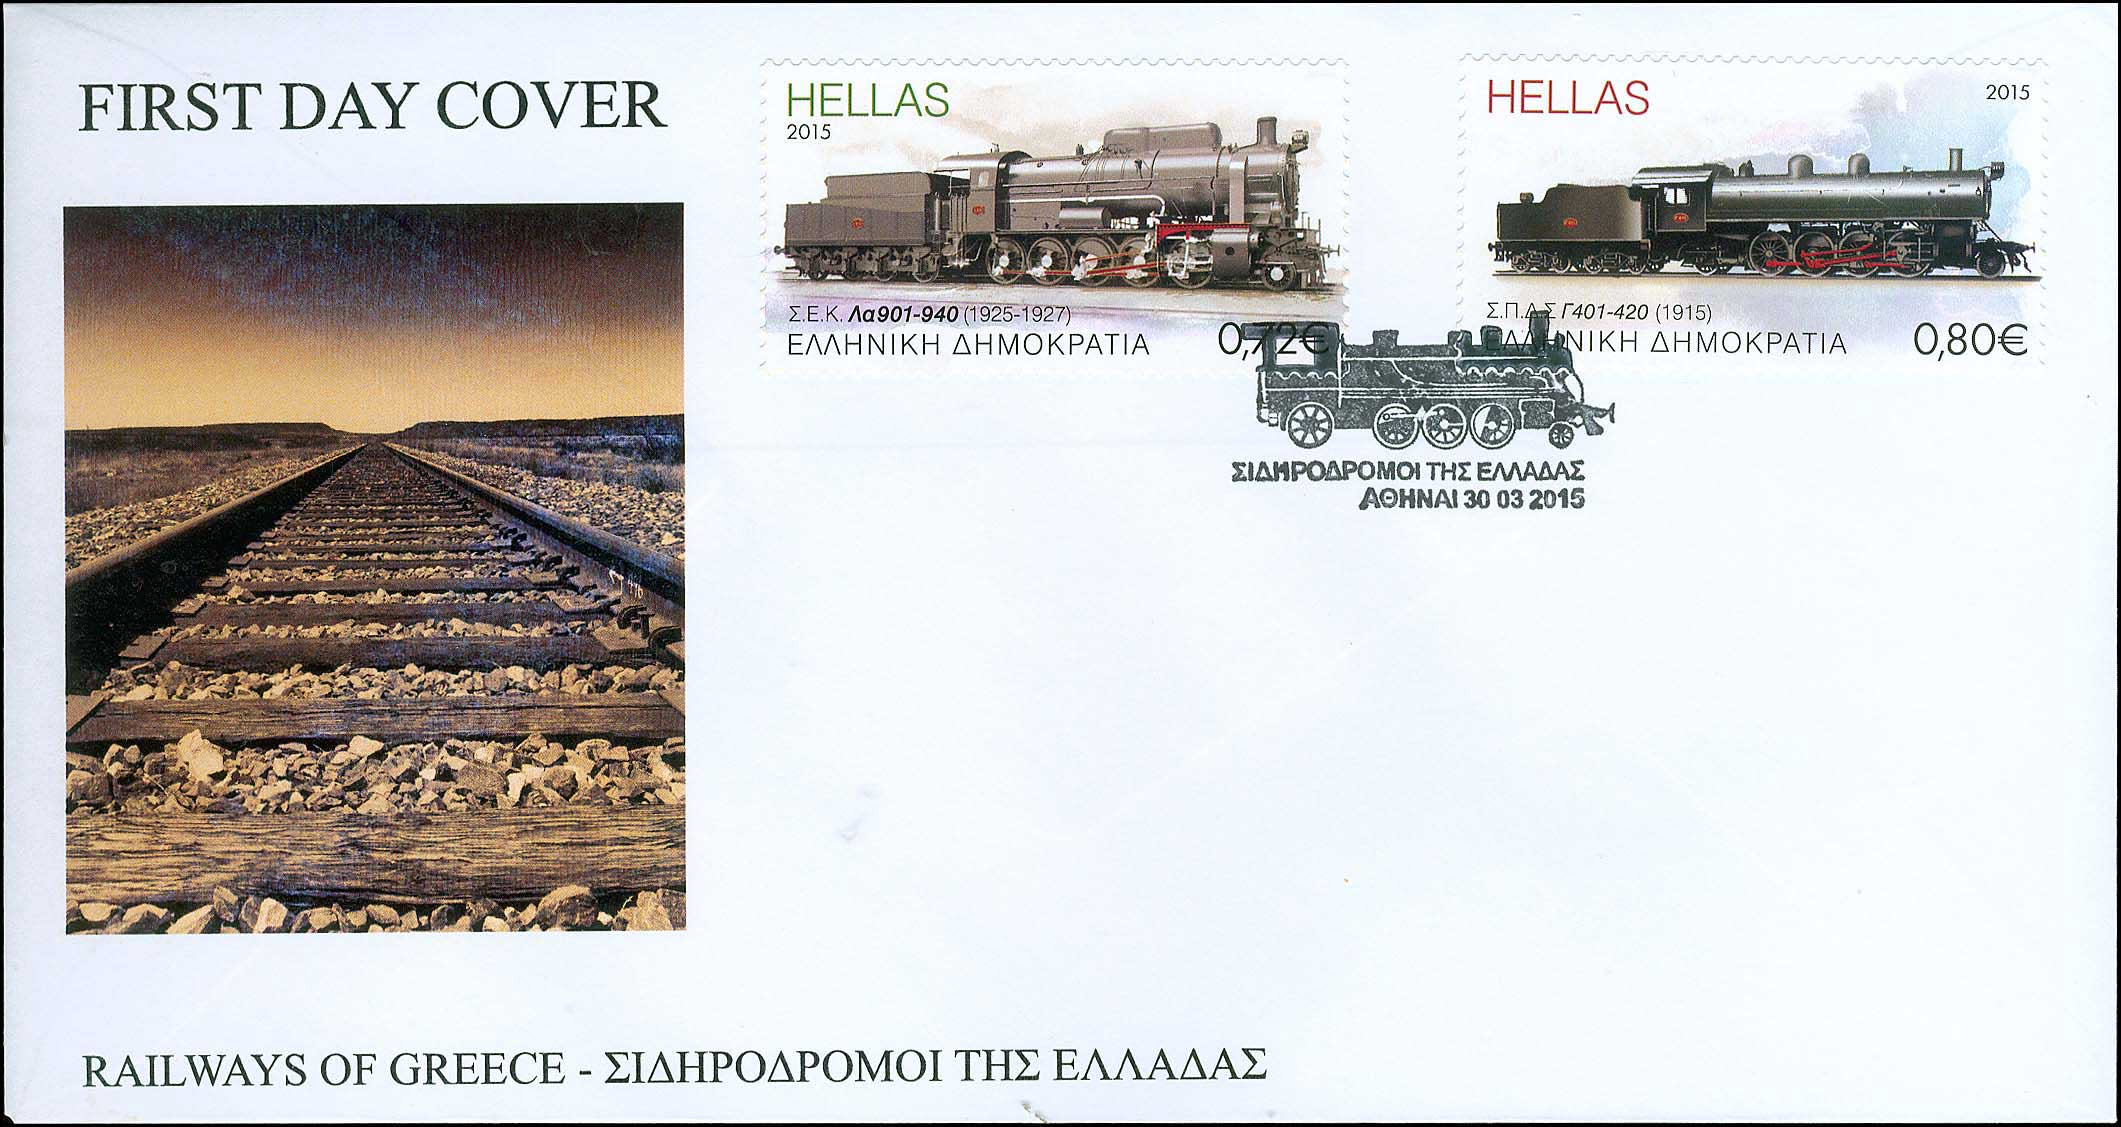 Lot 635 - -  FIRST DAY COVER First day cover -  A. Karamitsos Public Auction 668 General Philatelic Auction